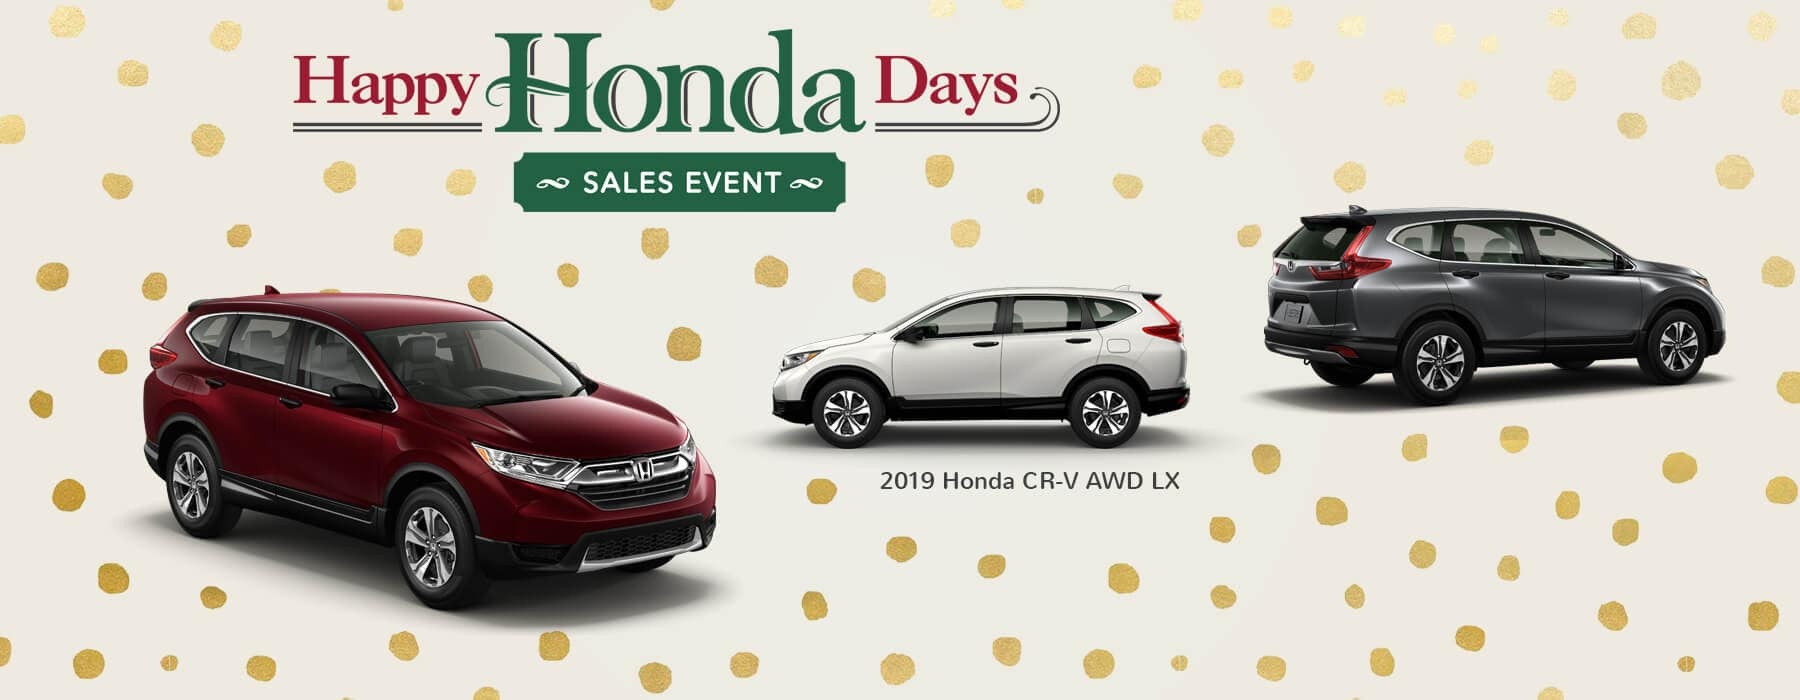 Happy Honda Days Sales Event 2019 Honda CR-V Slider